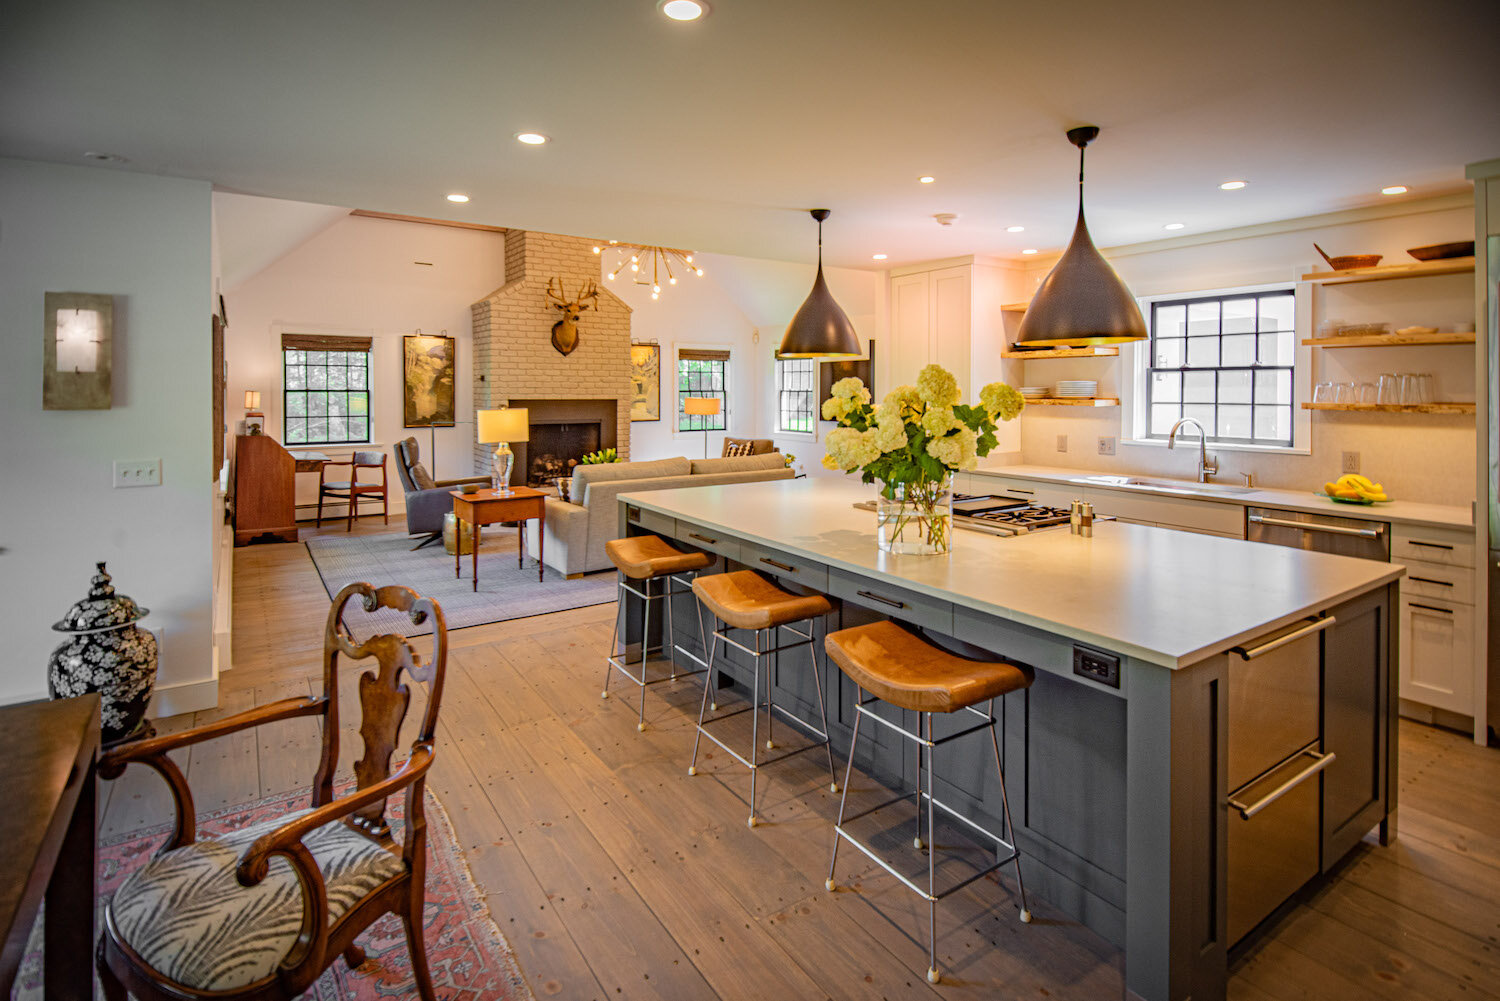 Manchester-Vermont-kitchen-renovation.jpg